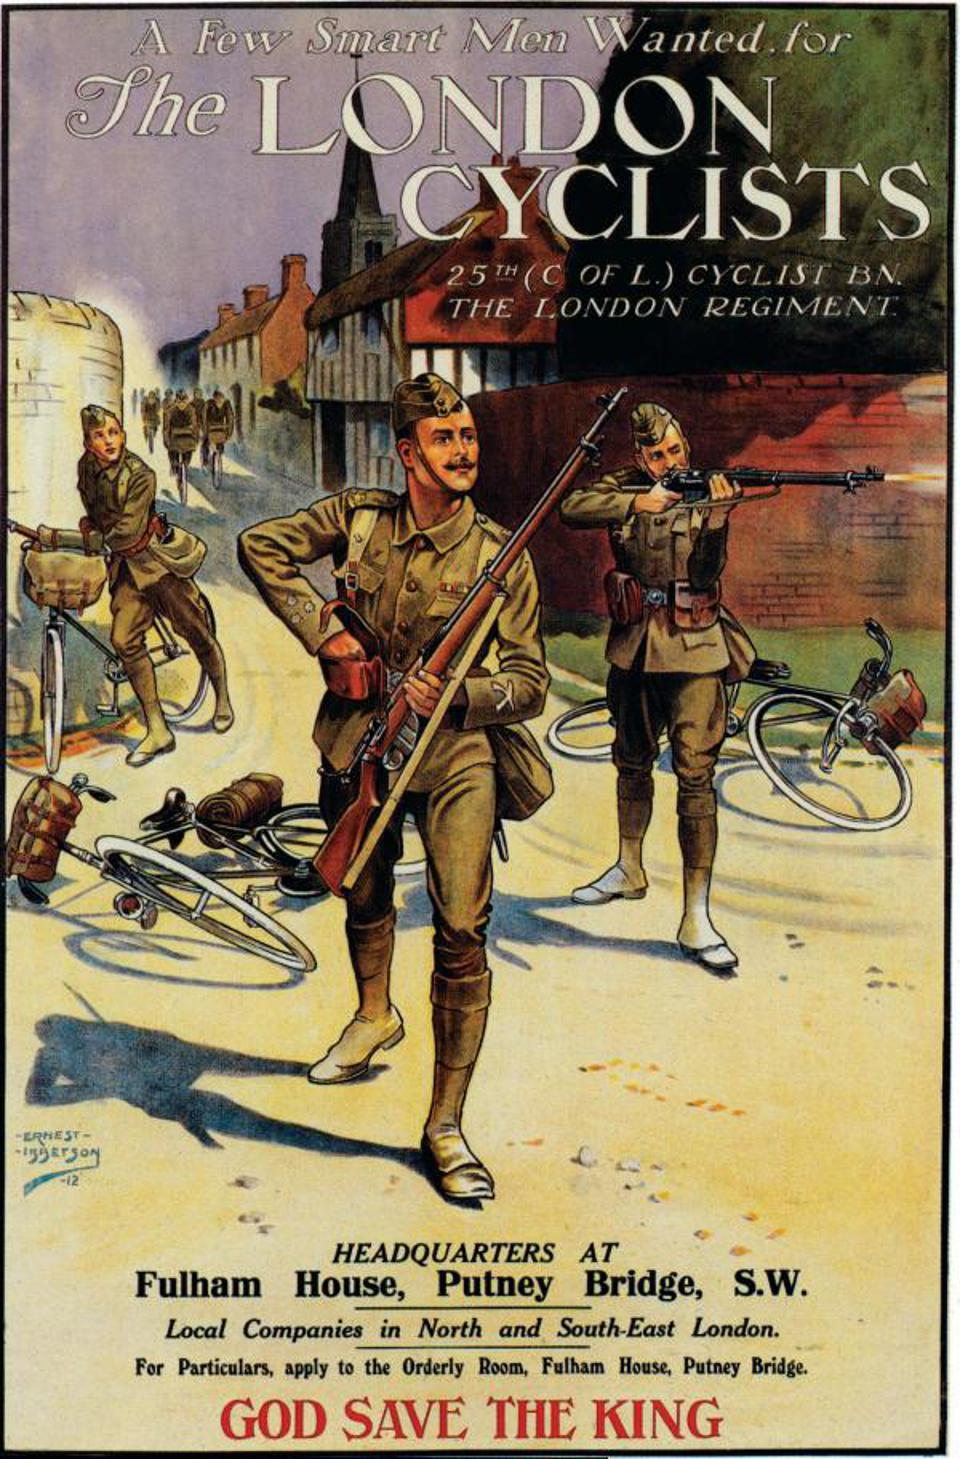 Soldier bicycle